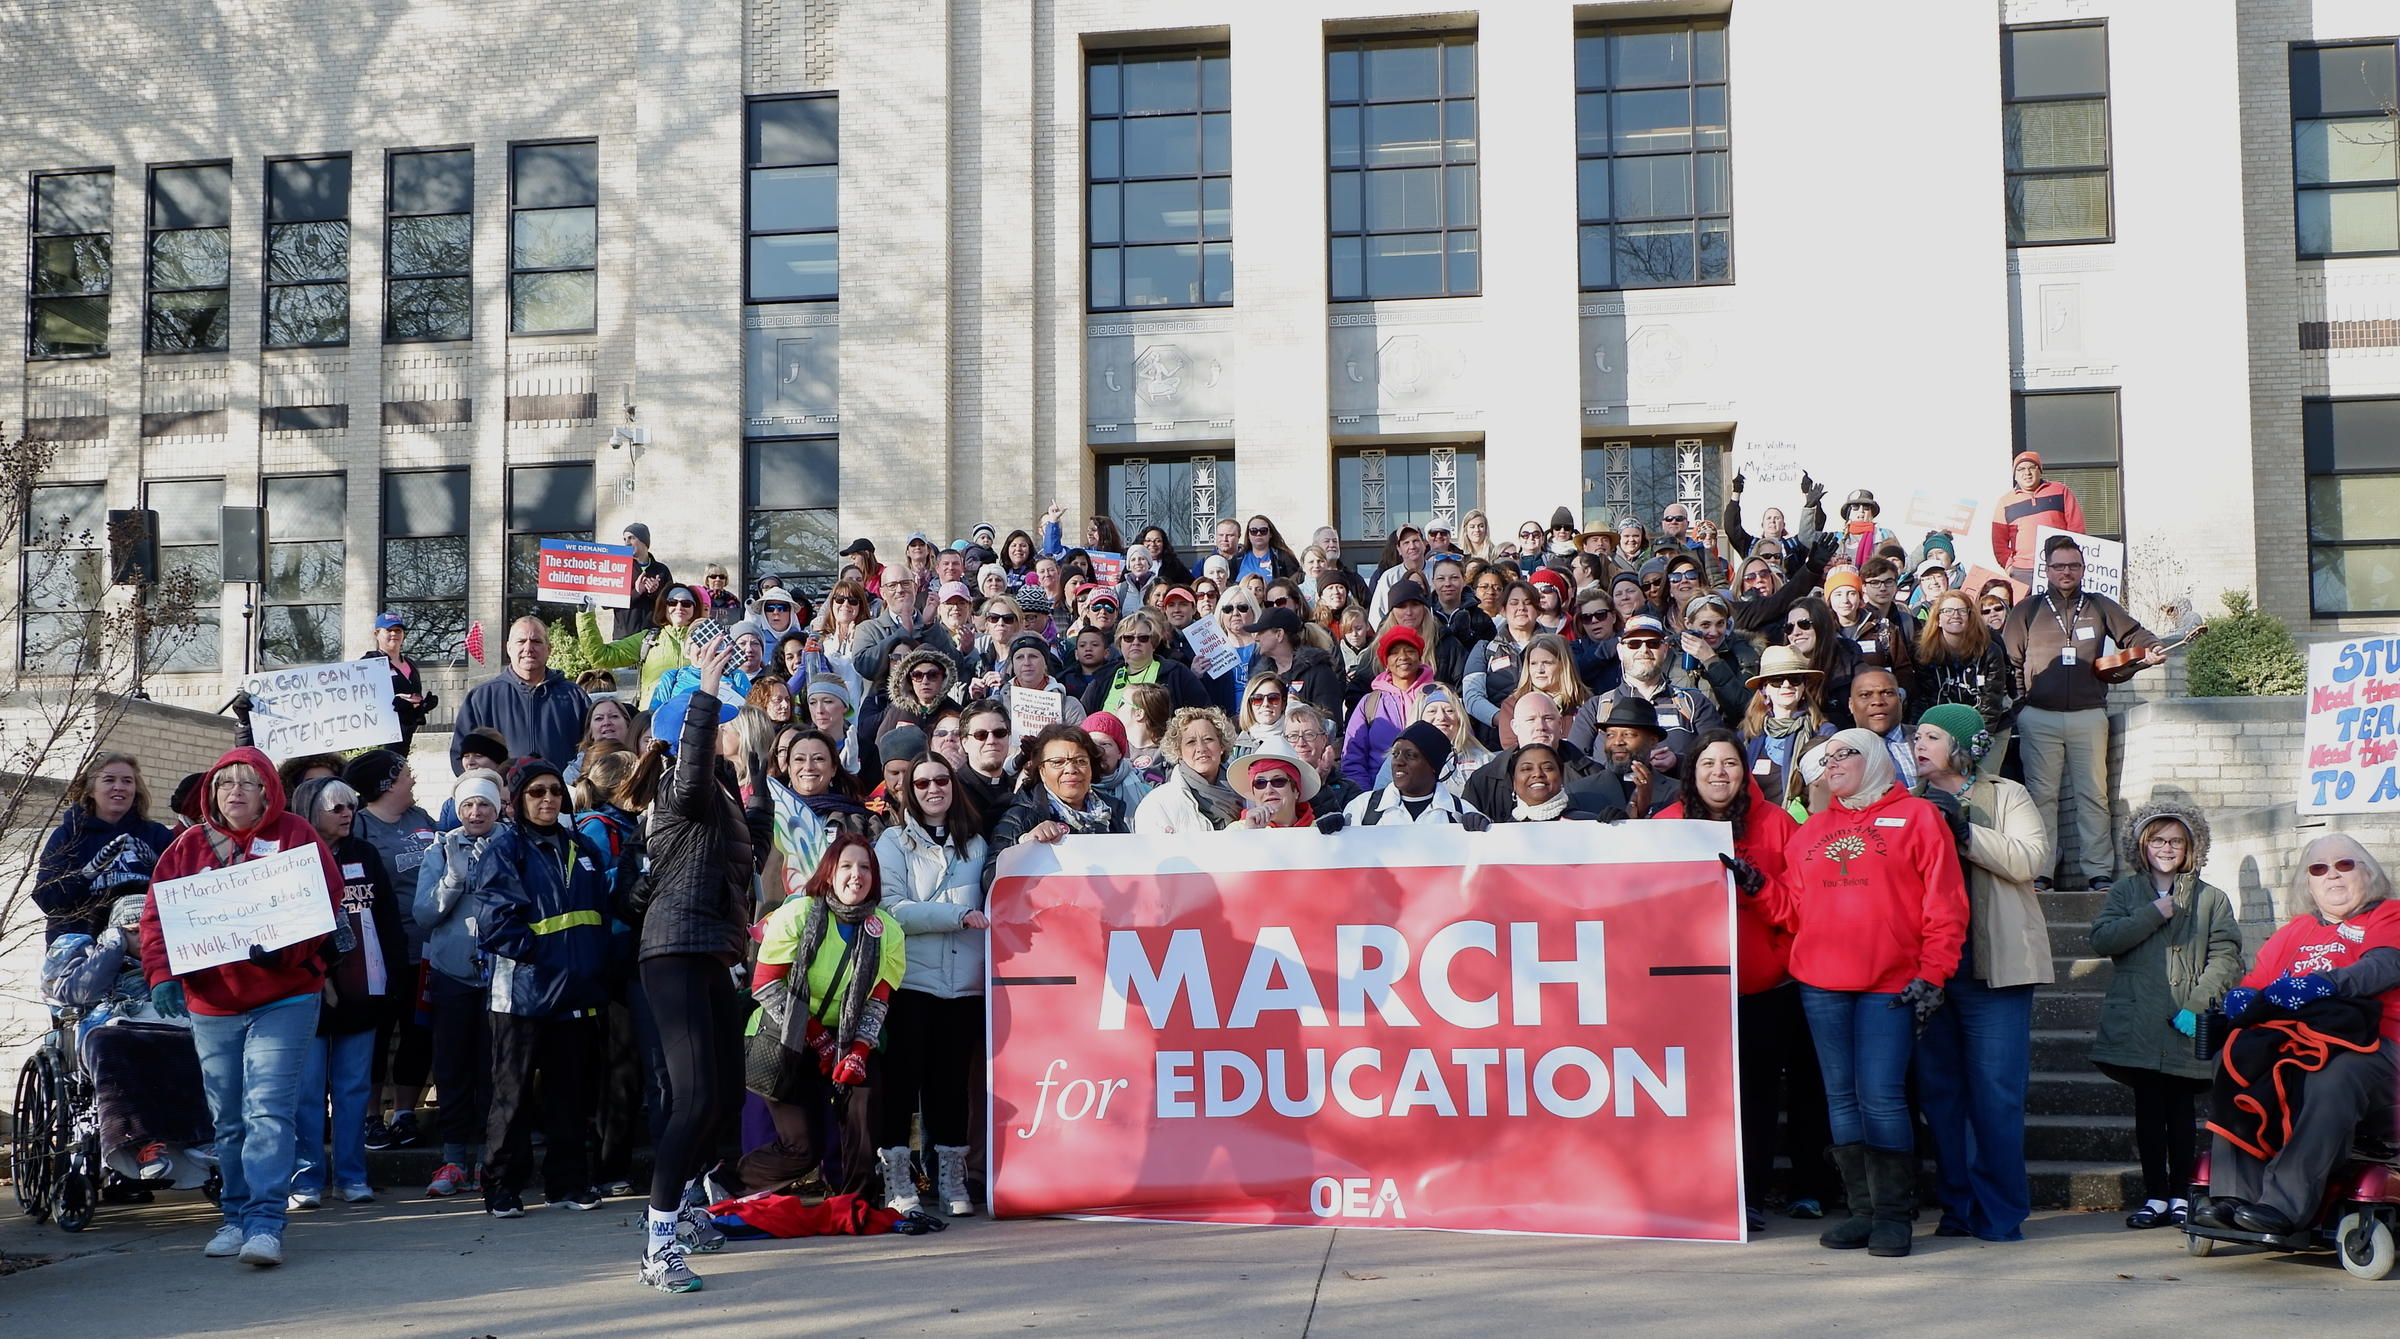 http://mediad.publicbroadcasting.net/p/kwgs/files/styles/x_large/public/201804/teacher_march_group_photo_webster.jpg